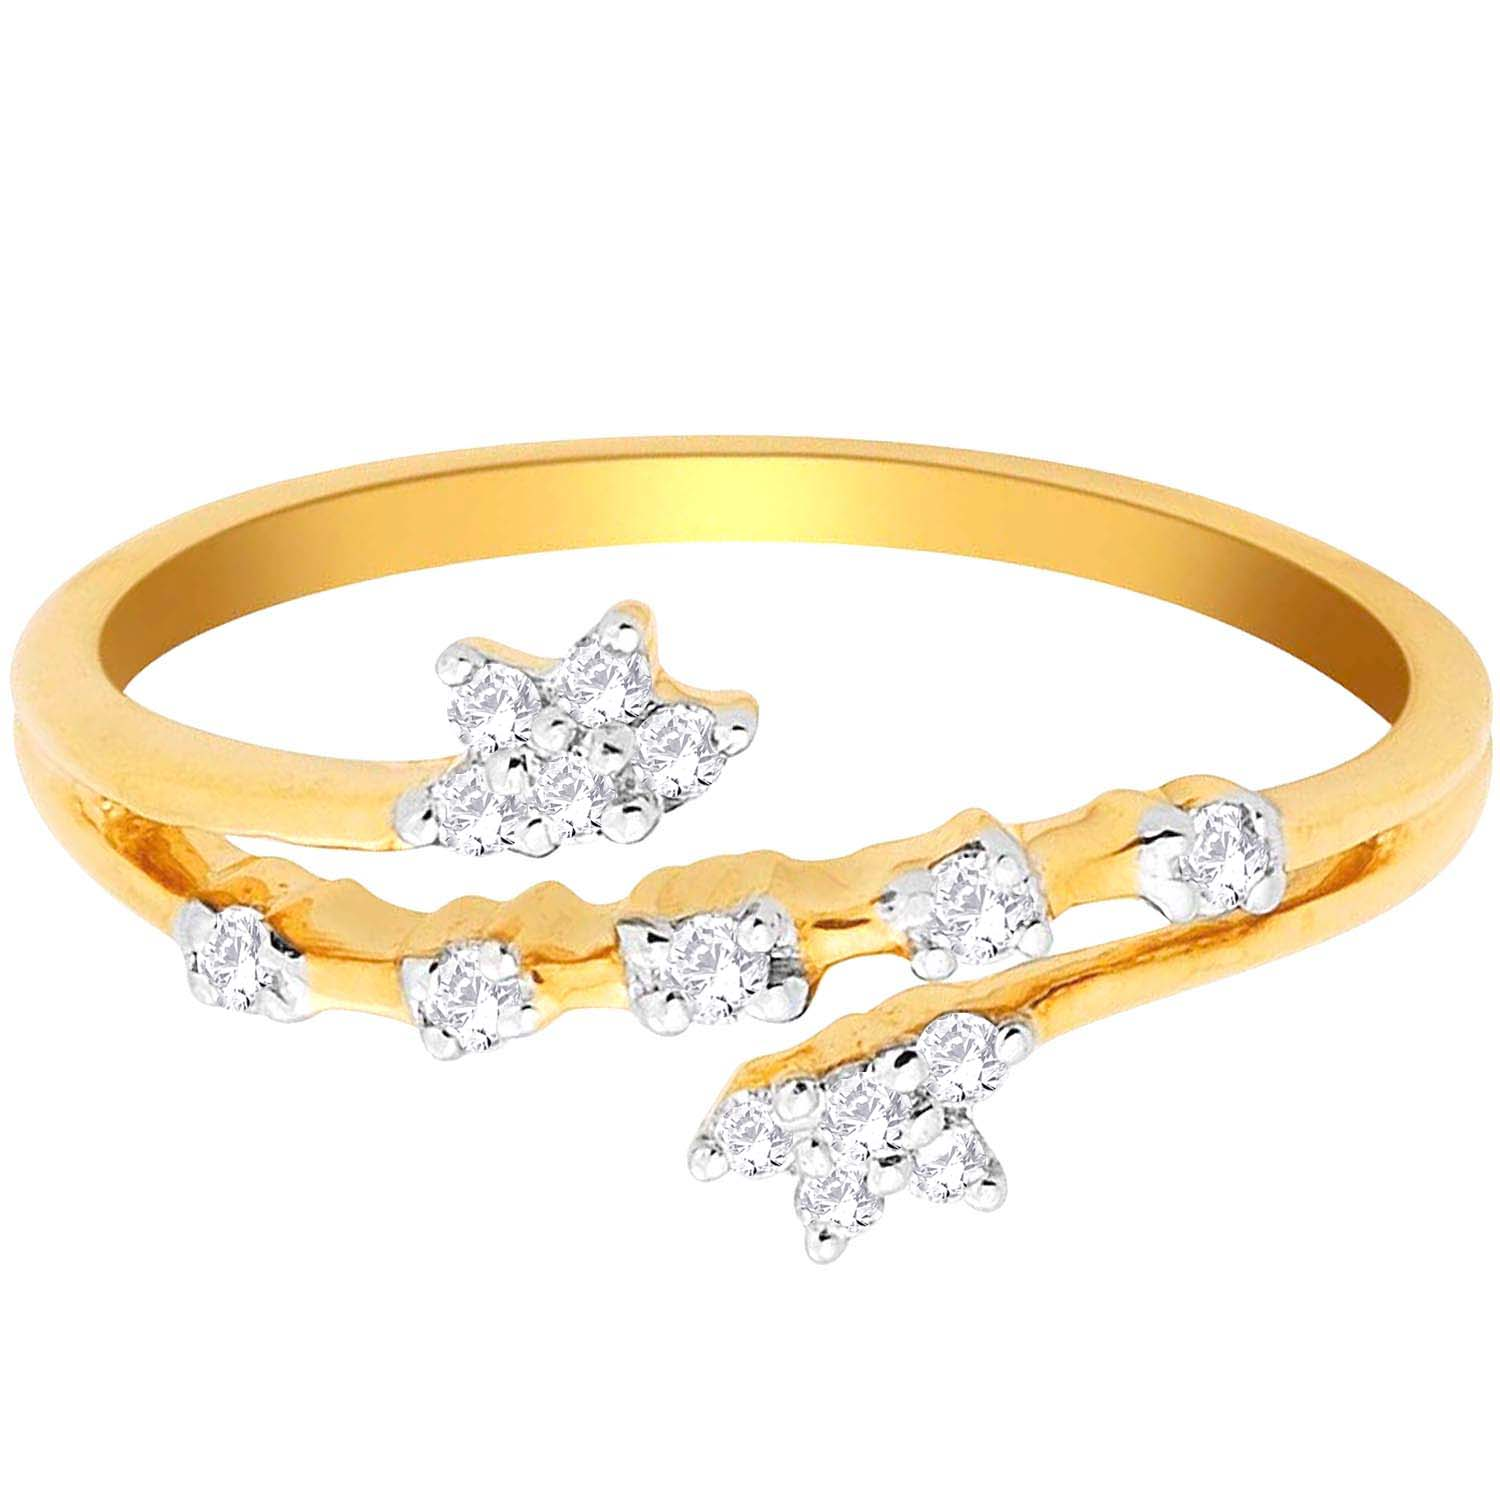 Diamond Ring Picture And Worth